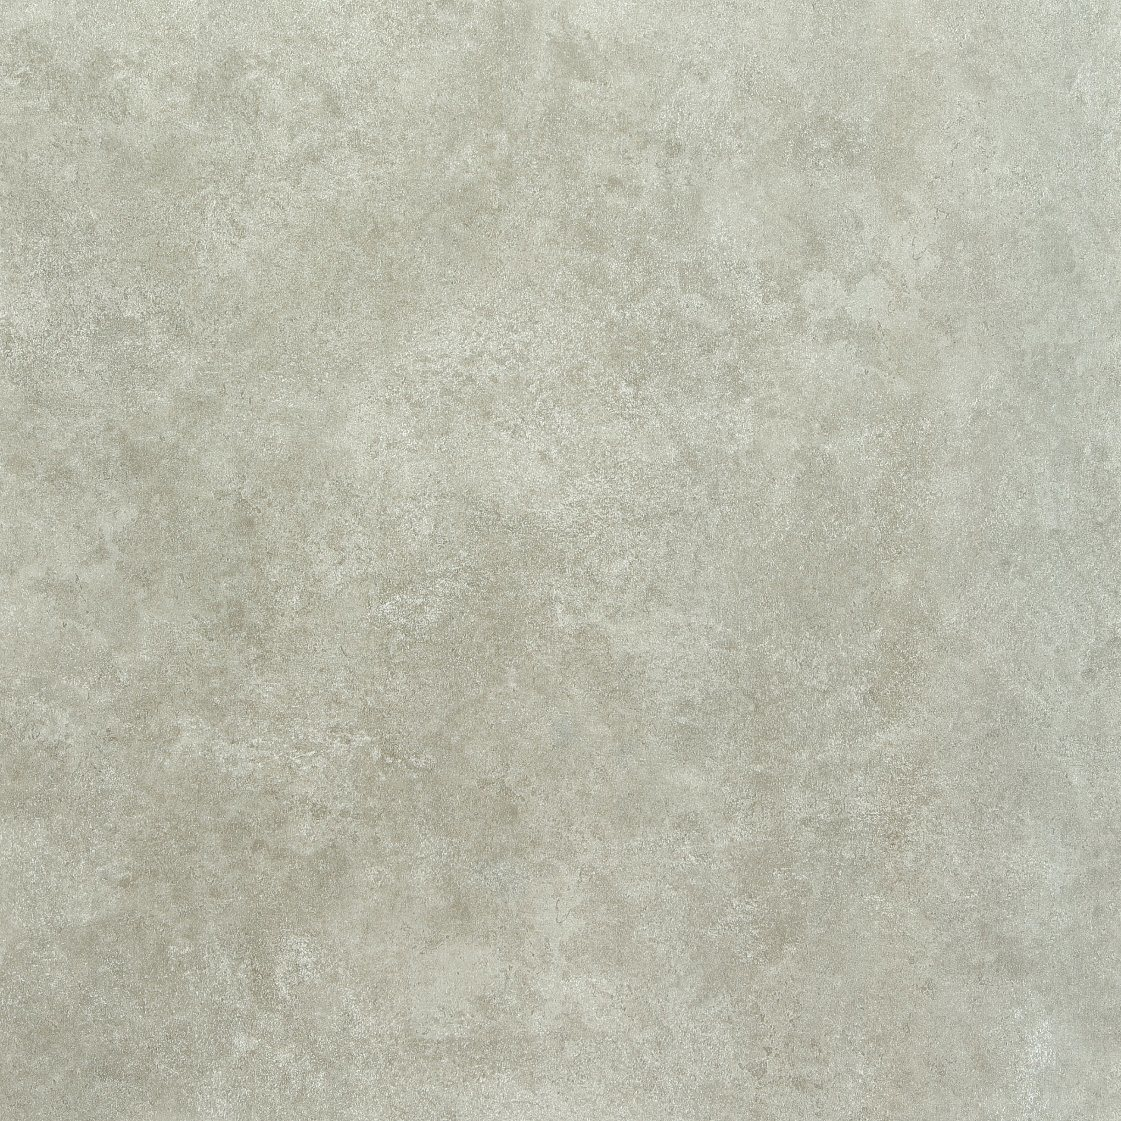 China building material stone tile matt finish rustic porcelain china building material stone tile matt finish rustic porcelain flooring tile china tile floor tile doublecrazyfo Choice Image